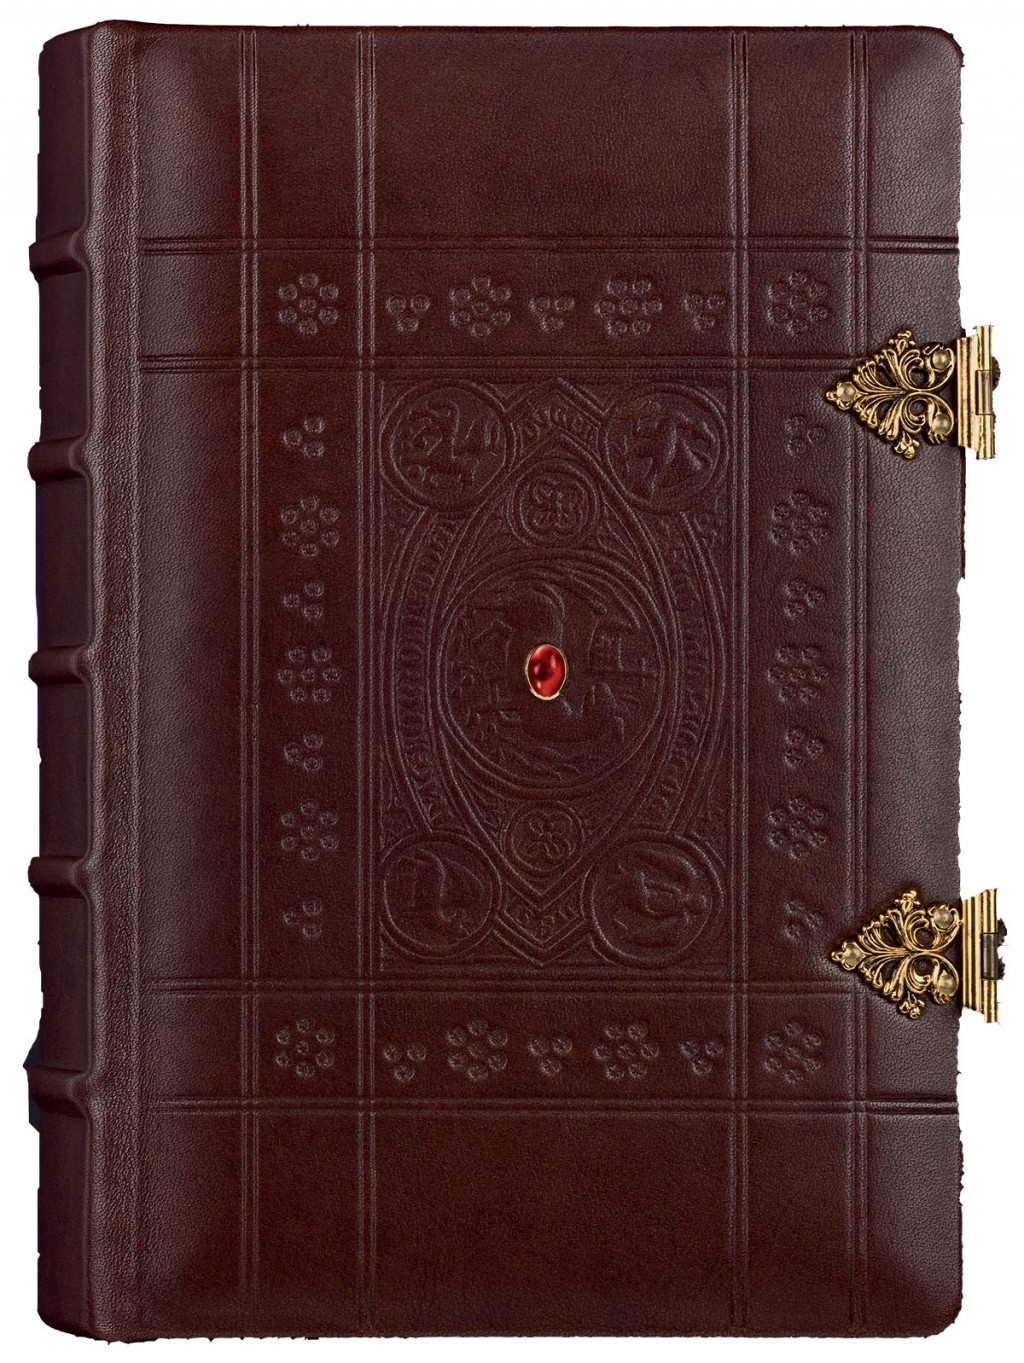 Binding of theHours of Catherine of Cleves